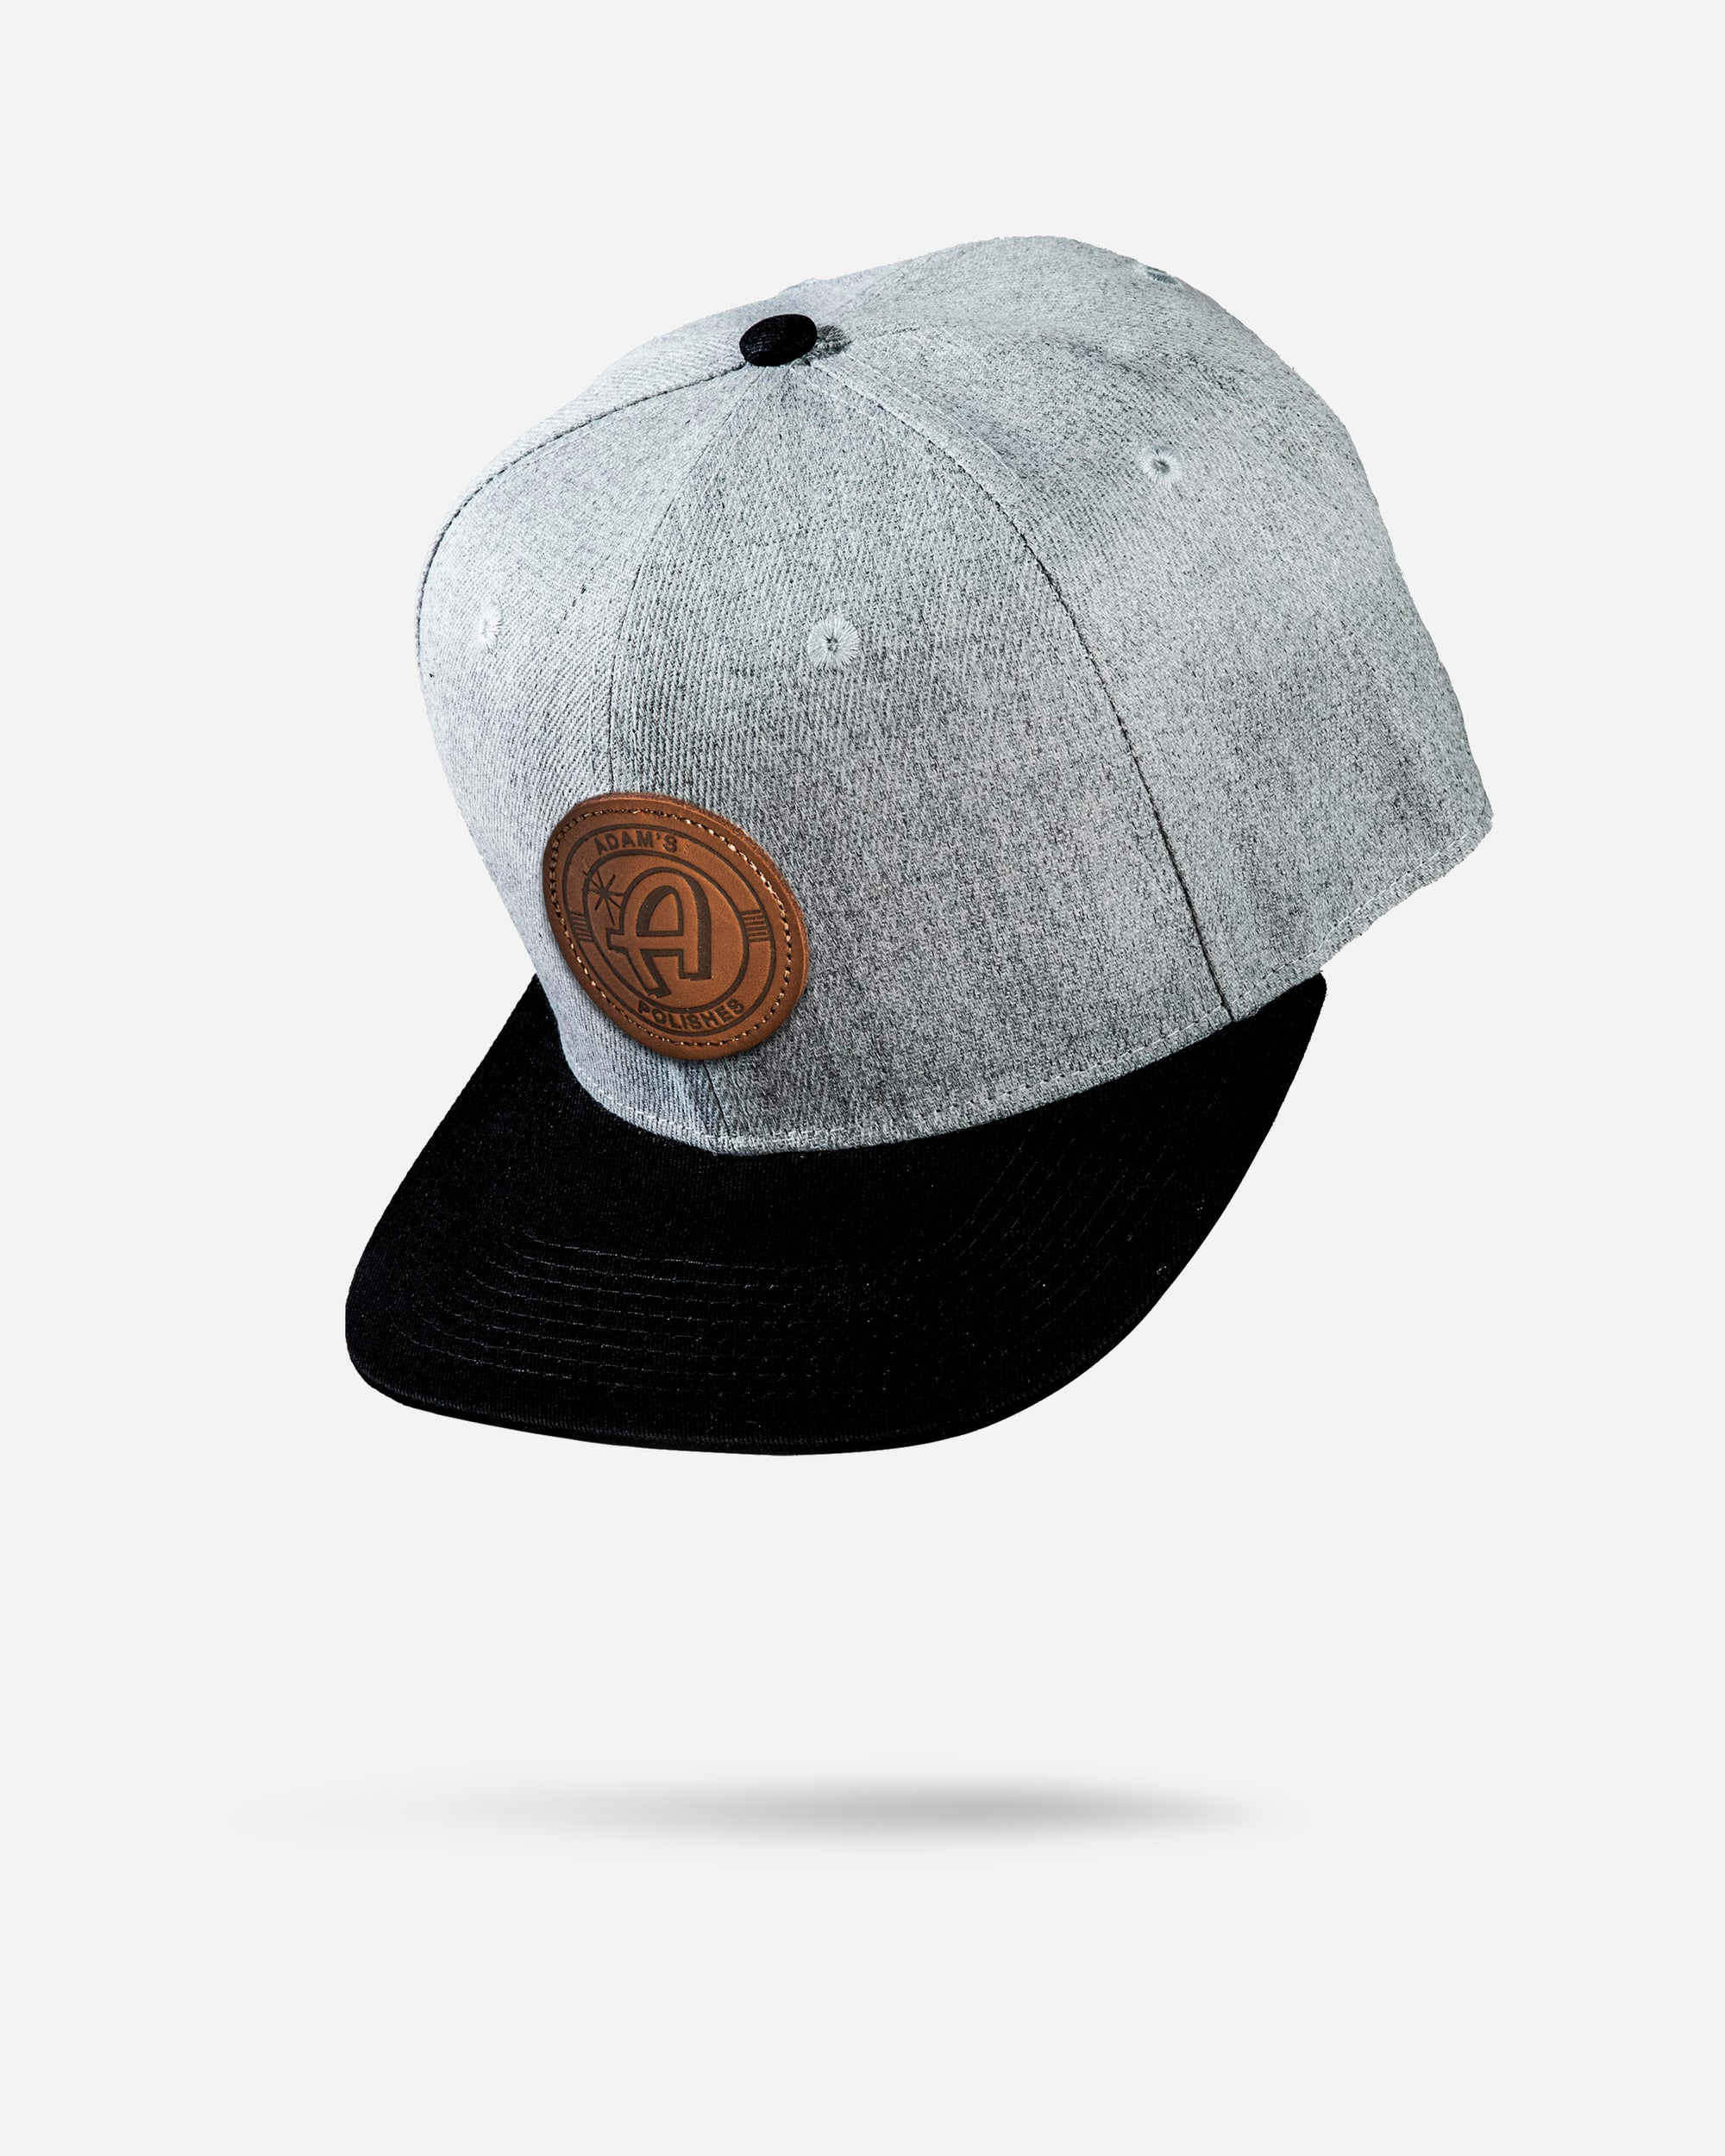 Adam's Black/Gray Snapback - Brown Patch